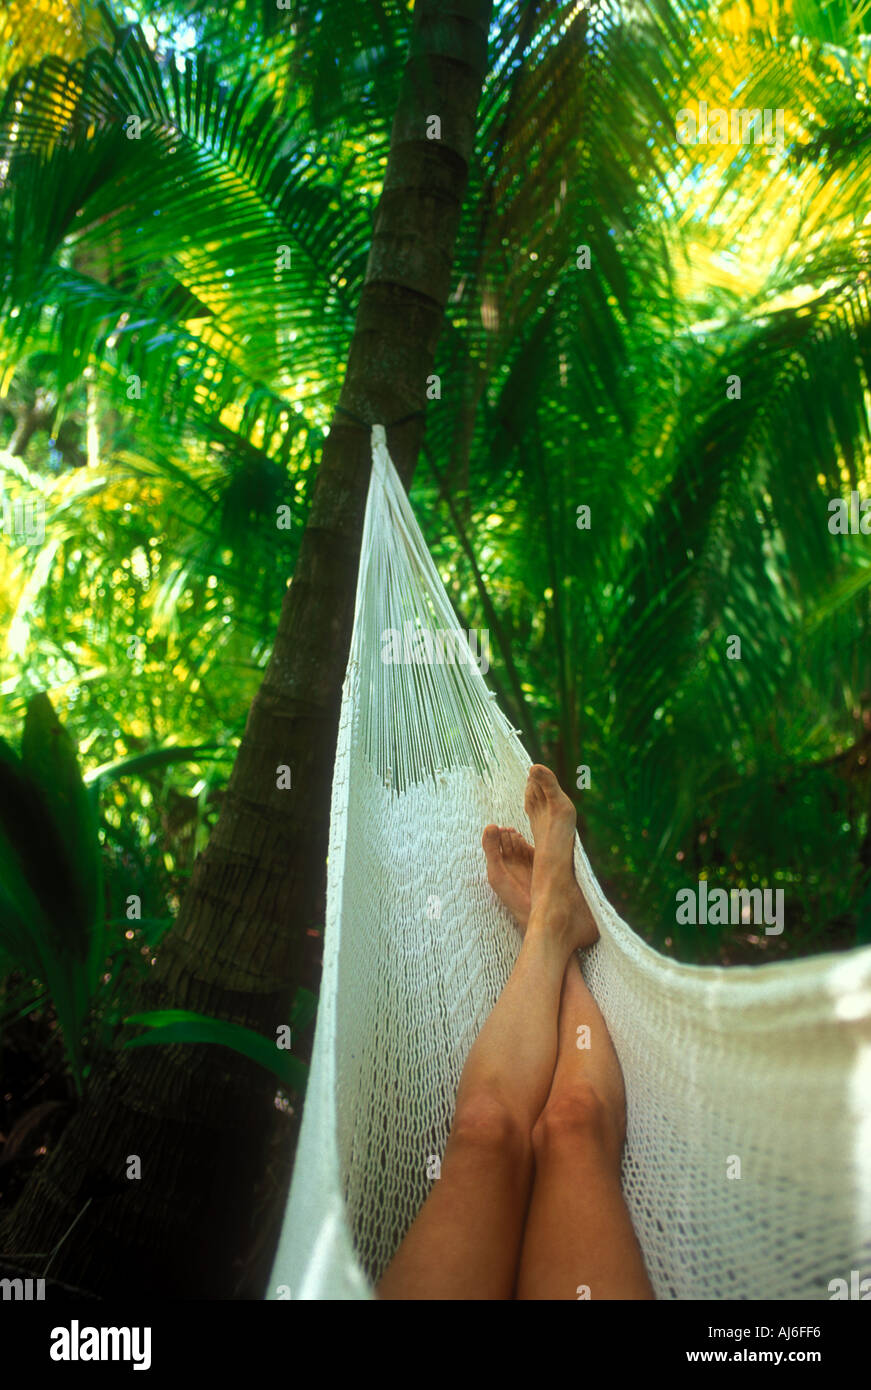 Womans legs in hammock surrounded by green tropical foliage in Belize Caribbean Model and Property Released Image Stock Photo